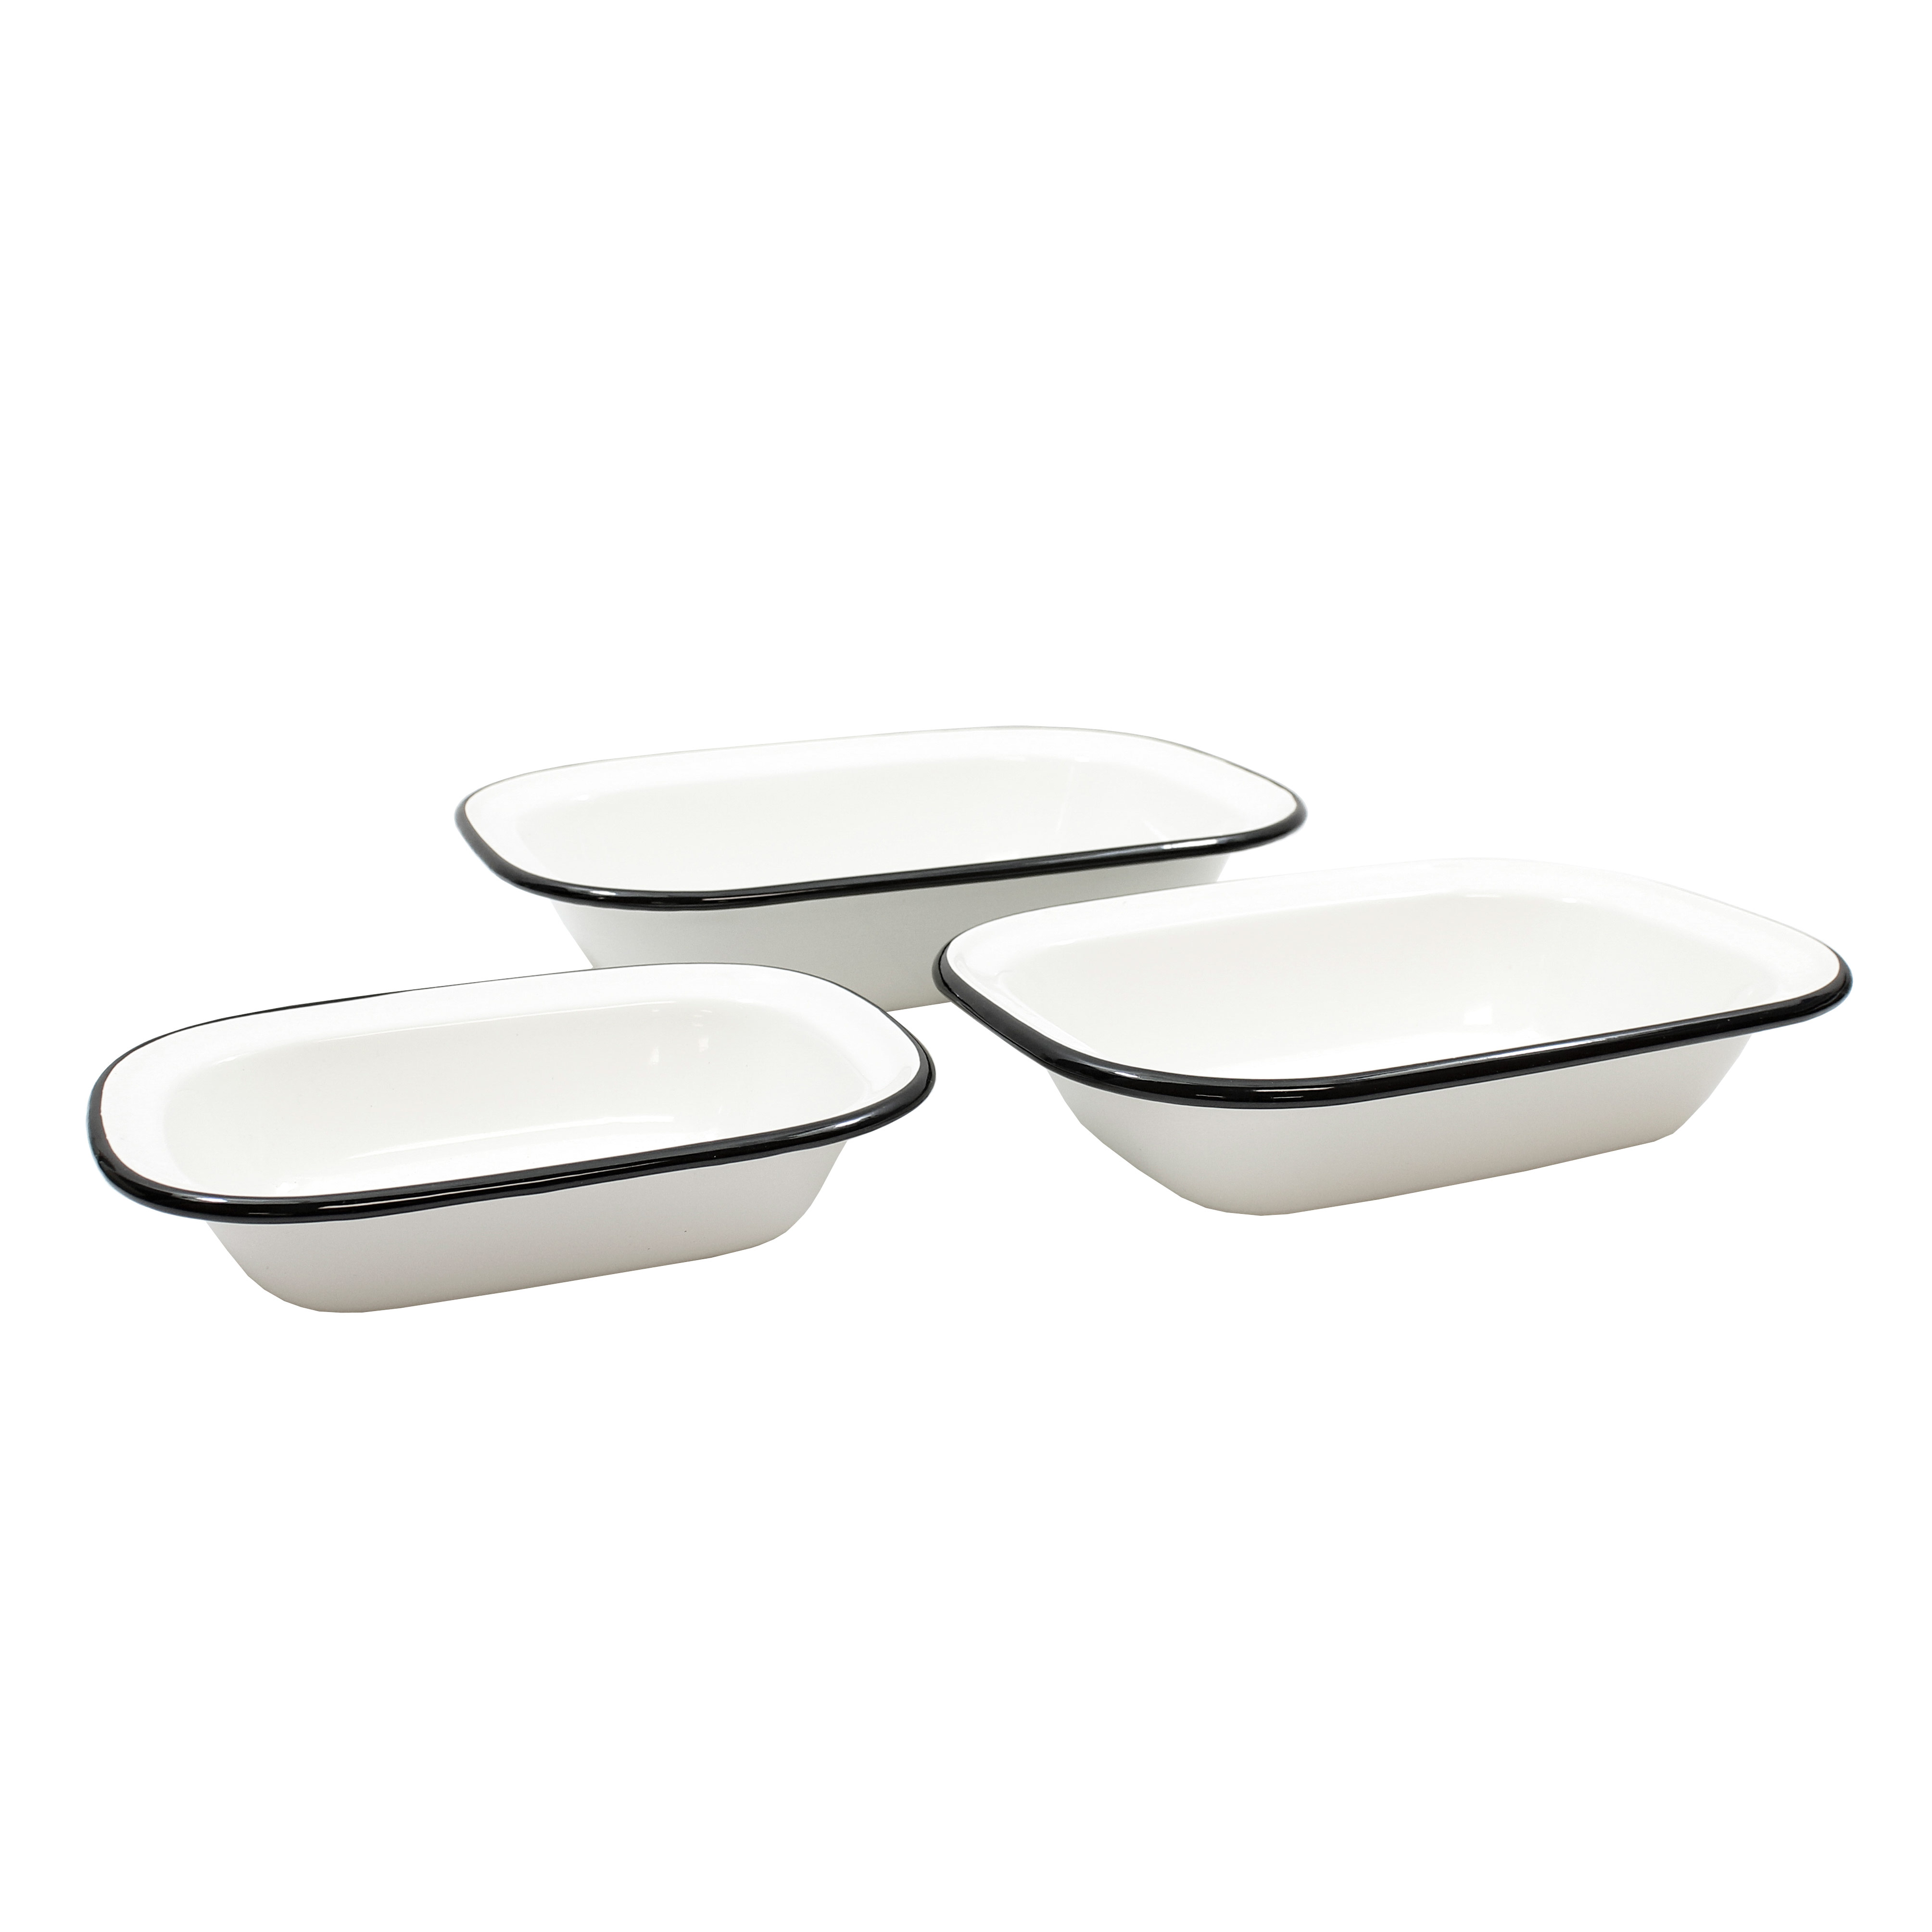 TableCraft Products 80014 serving & display tray